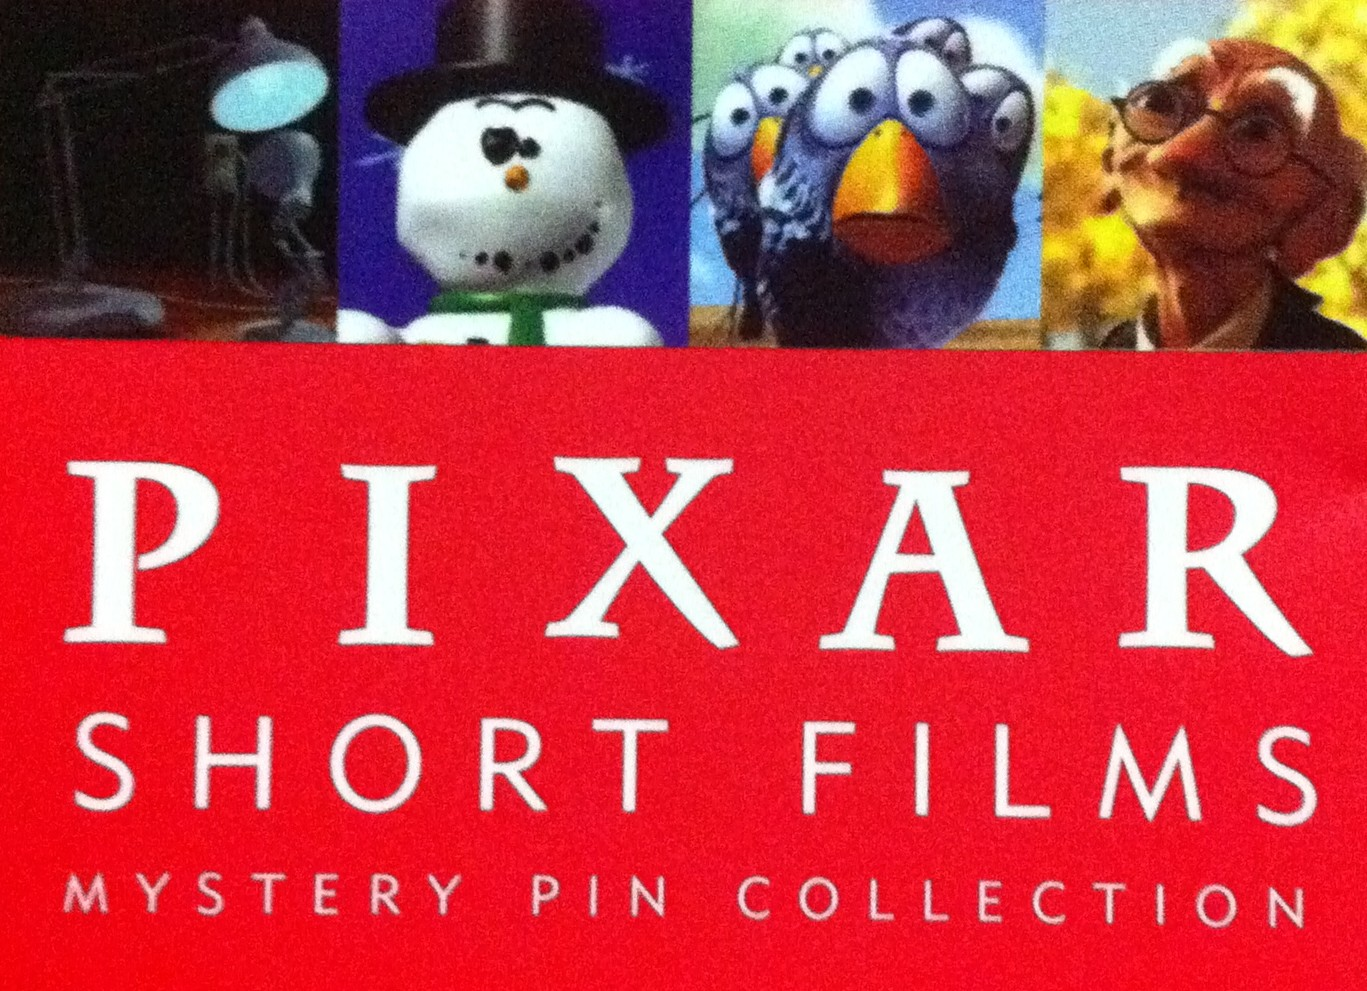 Pixar Short Films Mystery Pin Collection